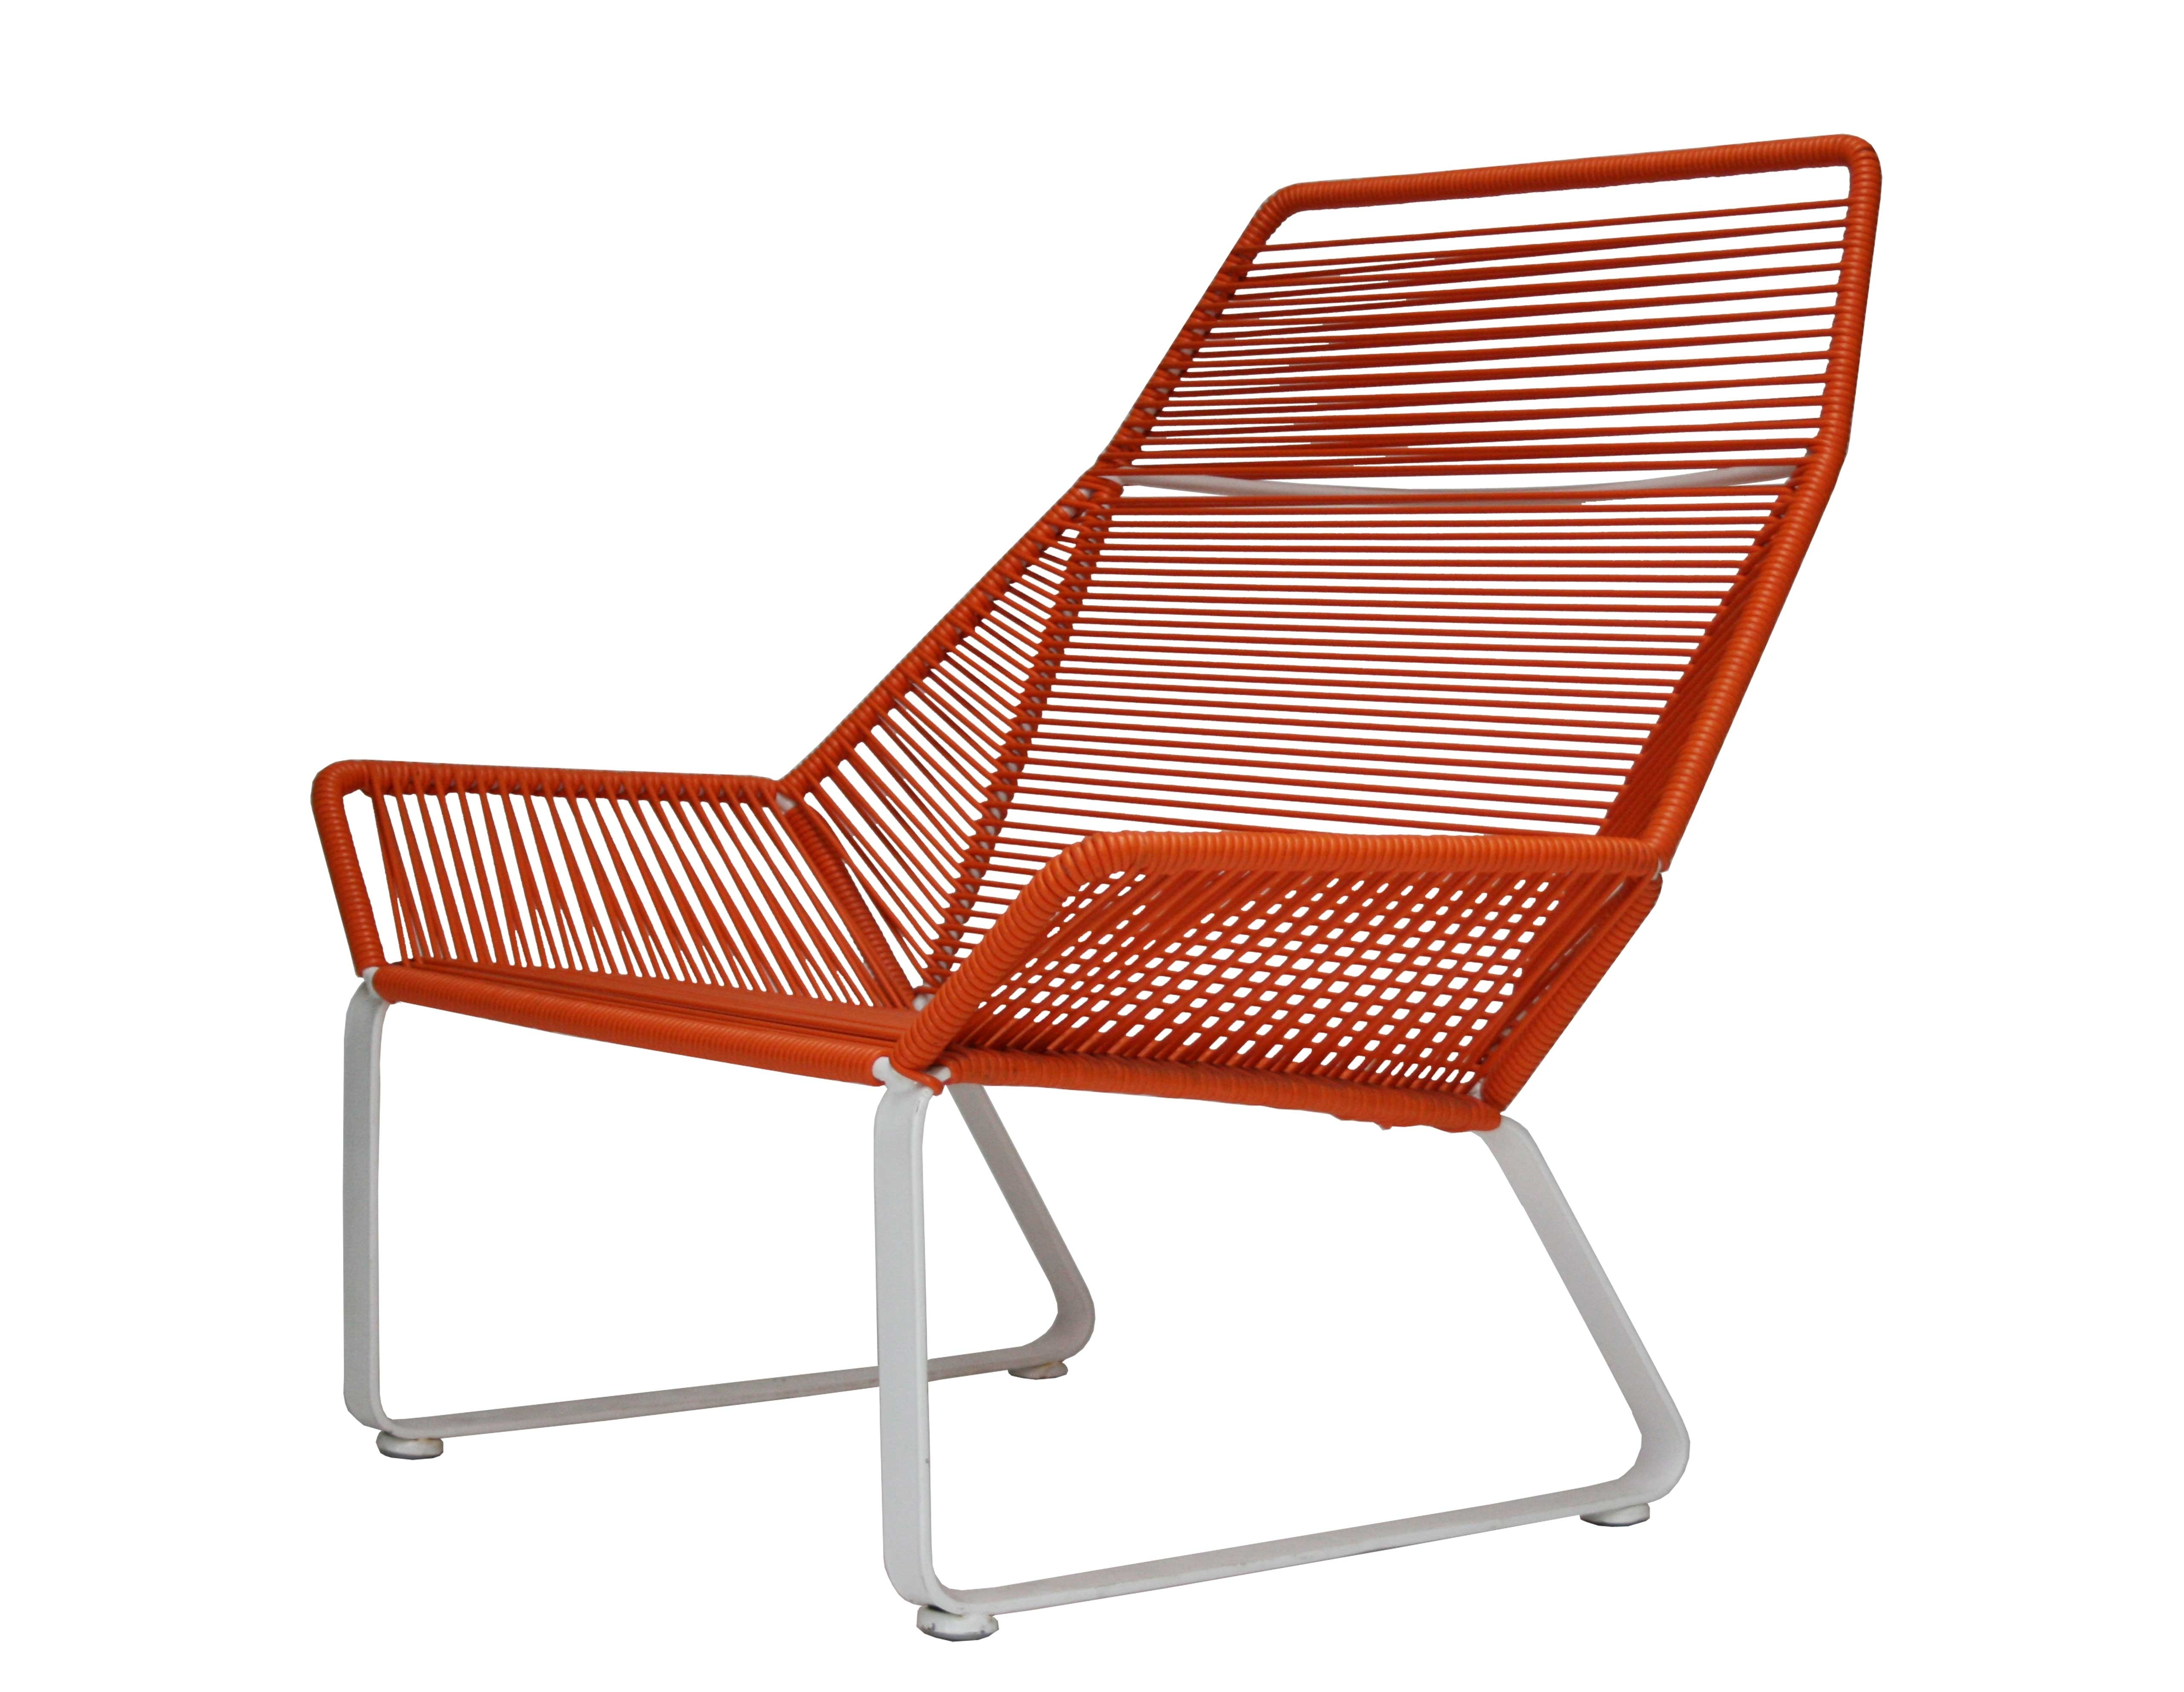 Most Current Vinyl Chaise Lounge Chairs With Regard To Vinyl Chaise Lounge Chairs Outdoor • Lounge Chairs Ideas (View 5 of 15)